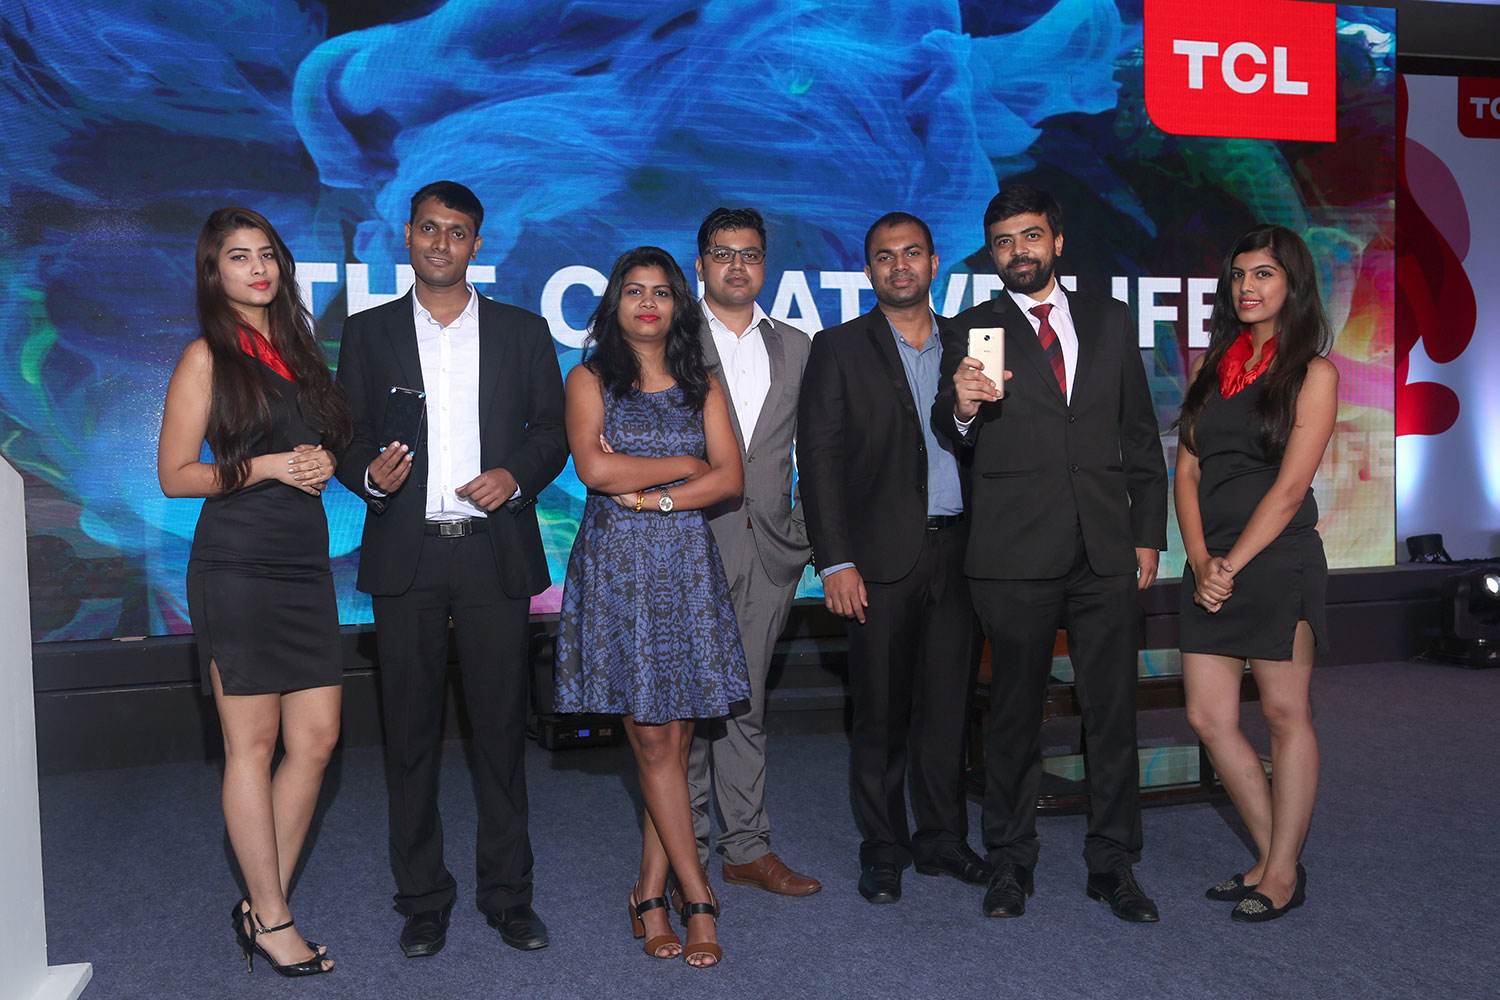 TCL-560-Mobile-launch-8